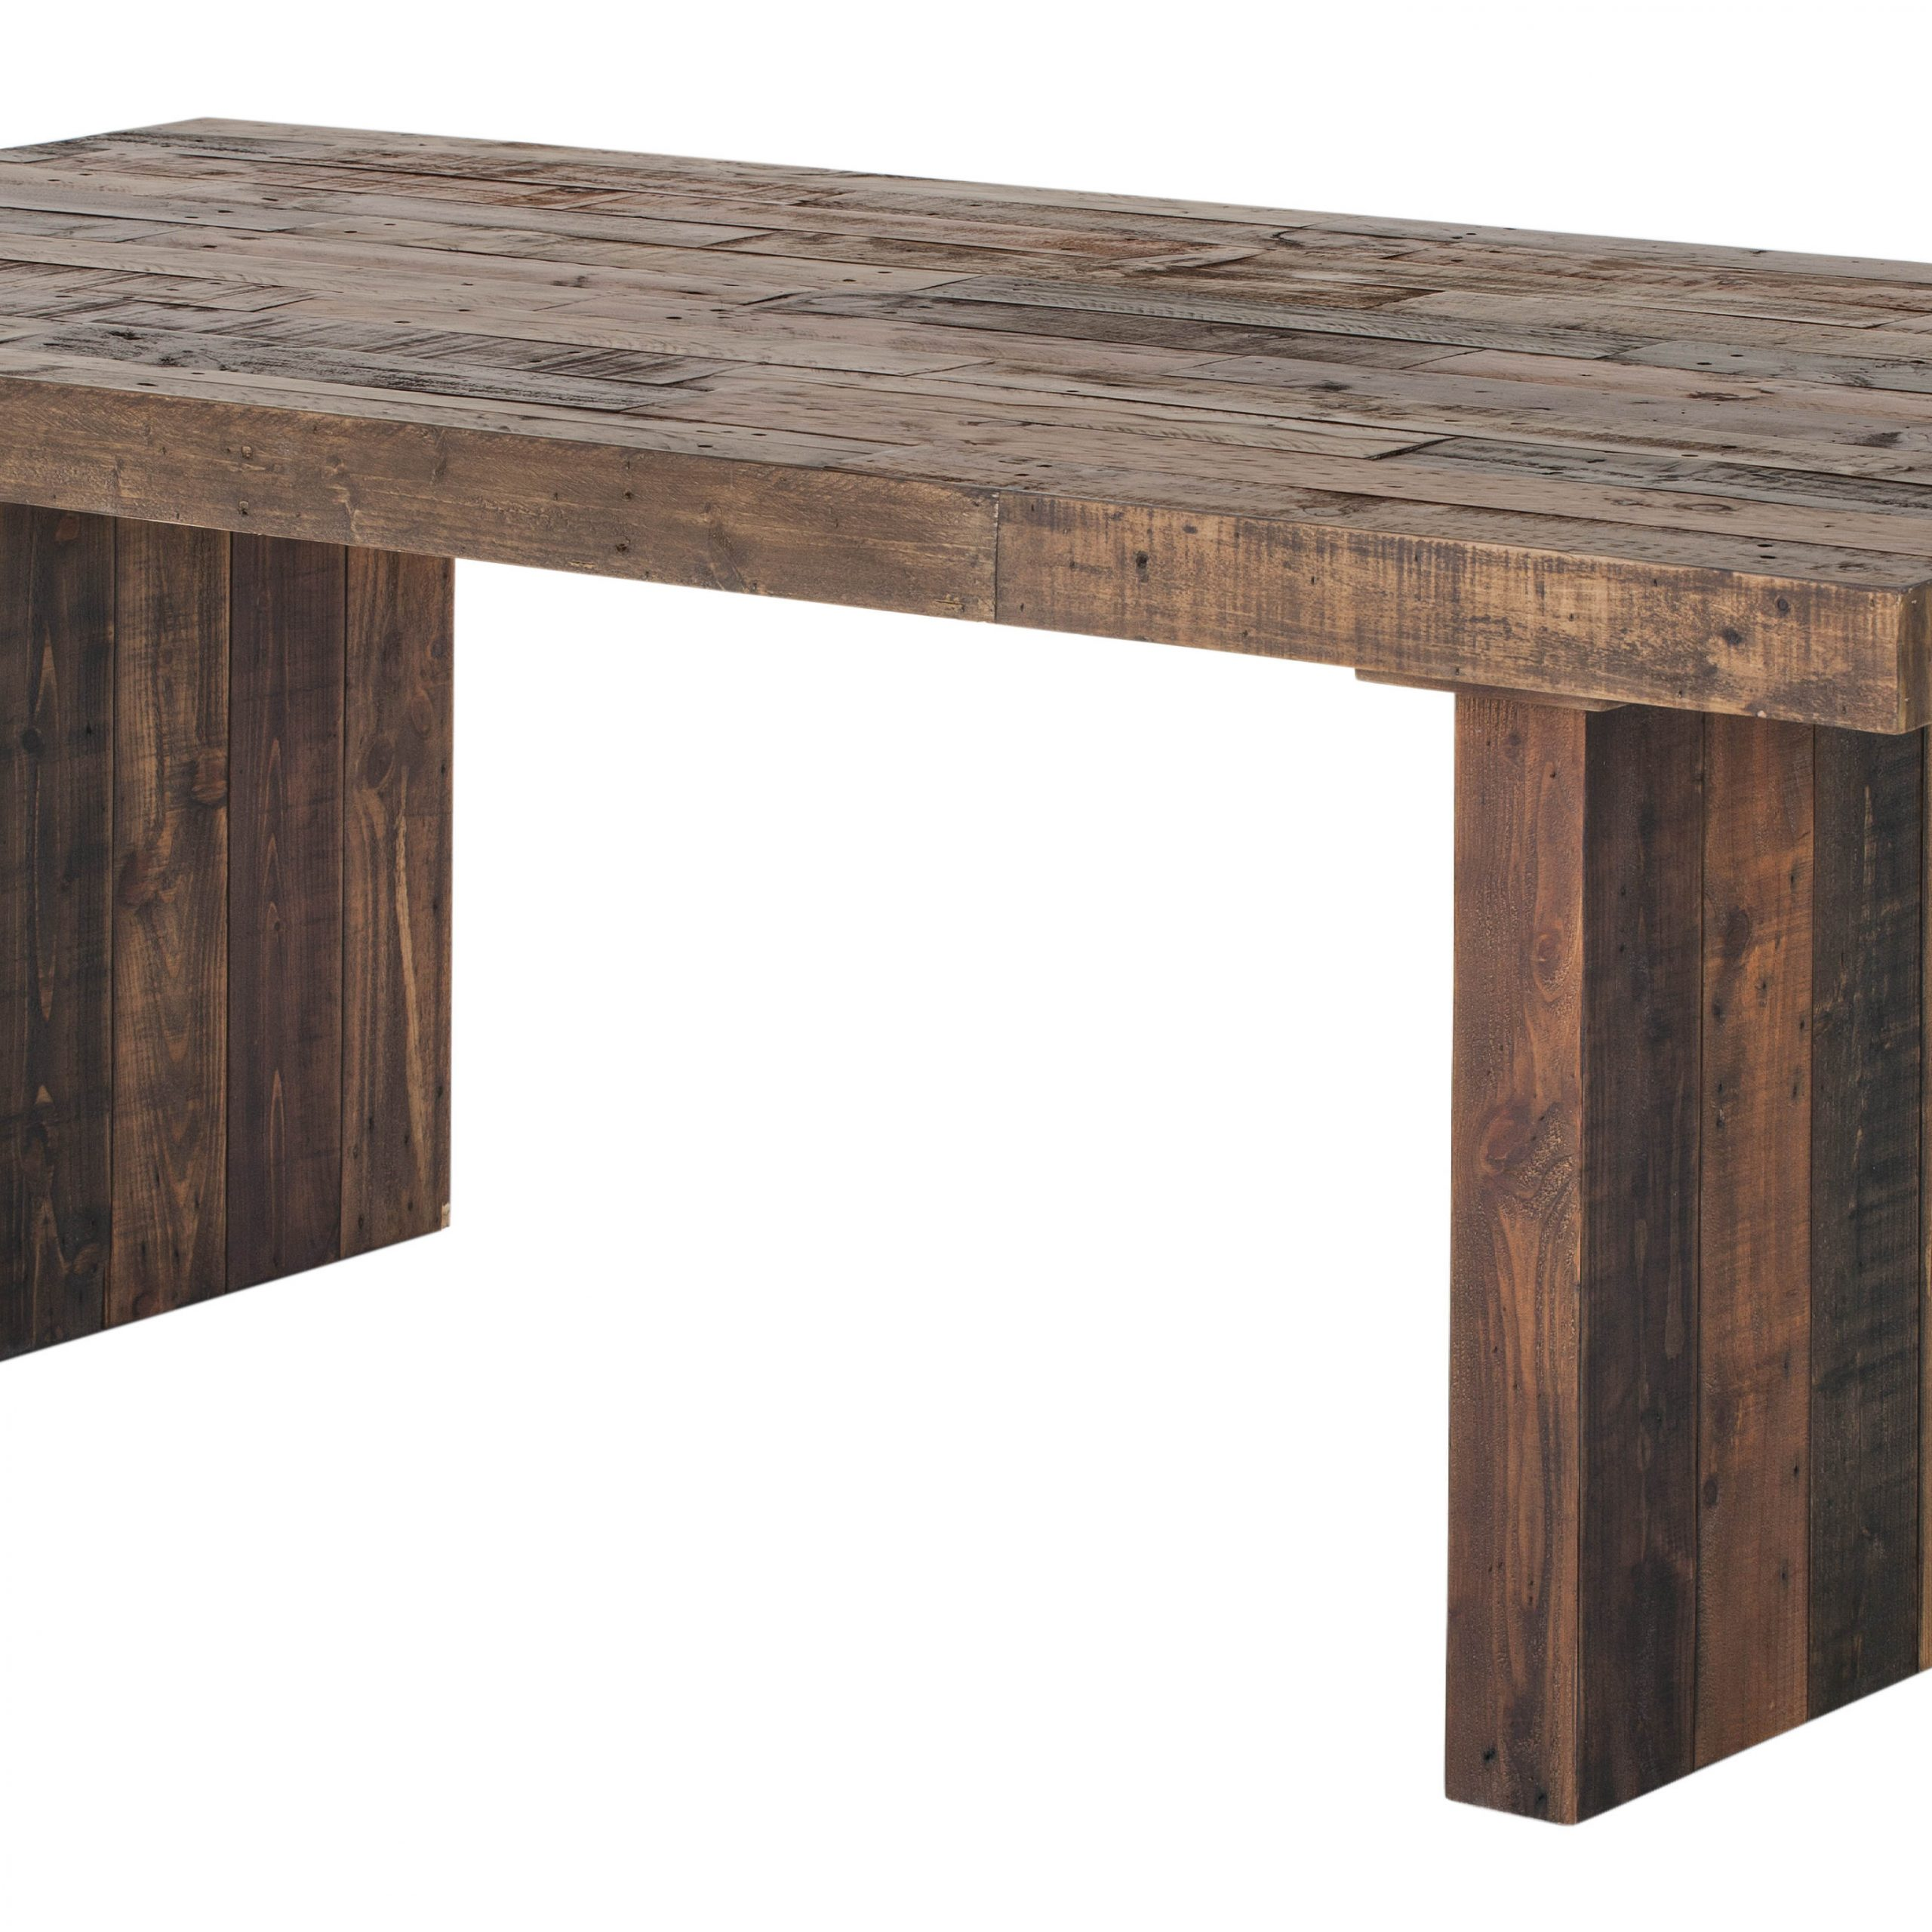 Small Dining Tables With Rustic Pine Ash Brown Finish Inside Latest Moes Home Vintage Light Brown Small Dining Table (View 21 of 25)